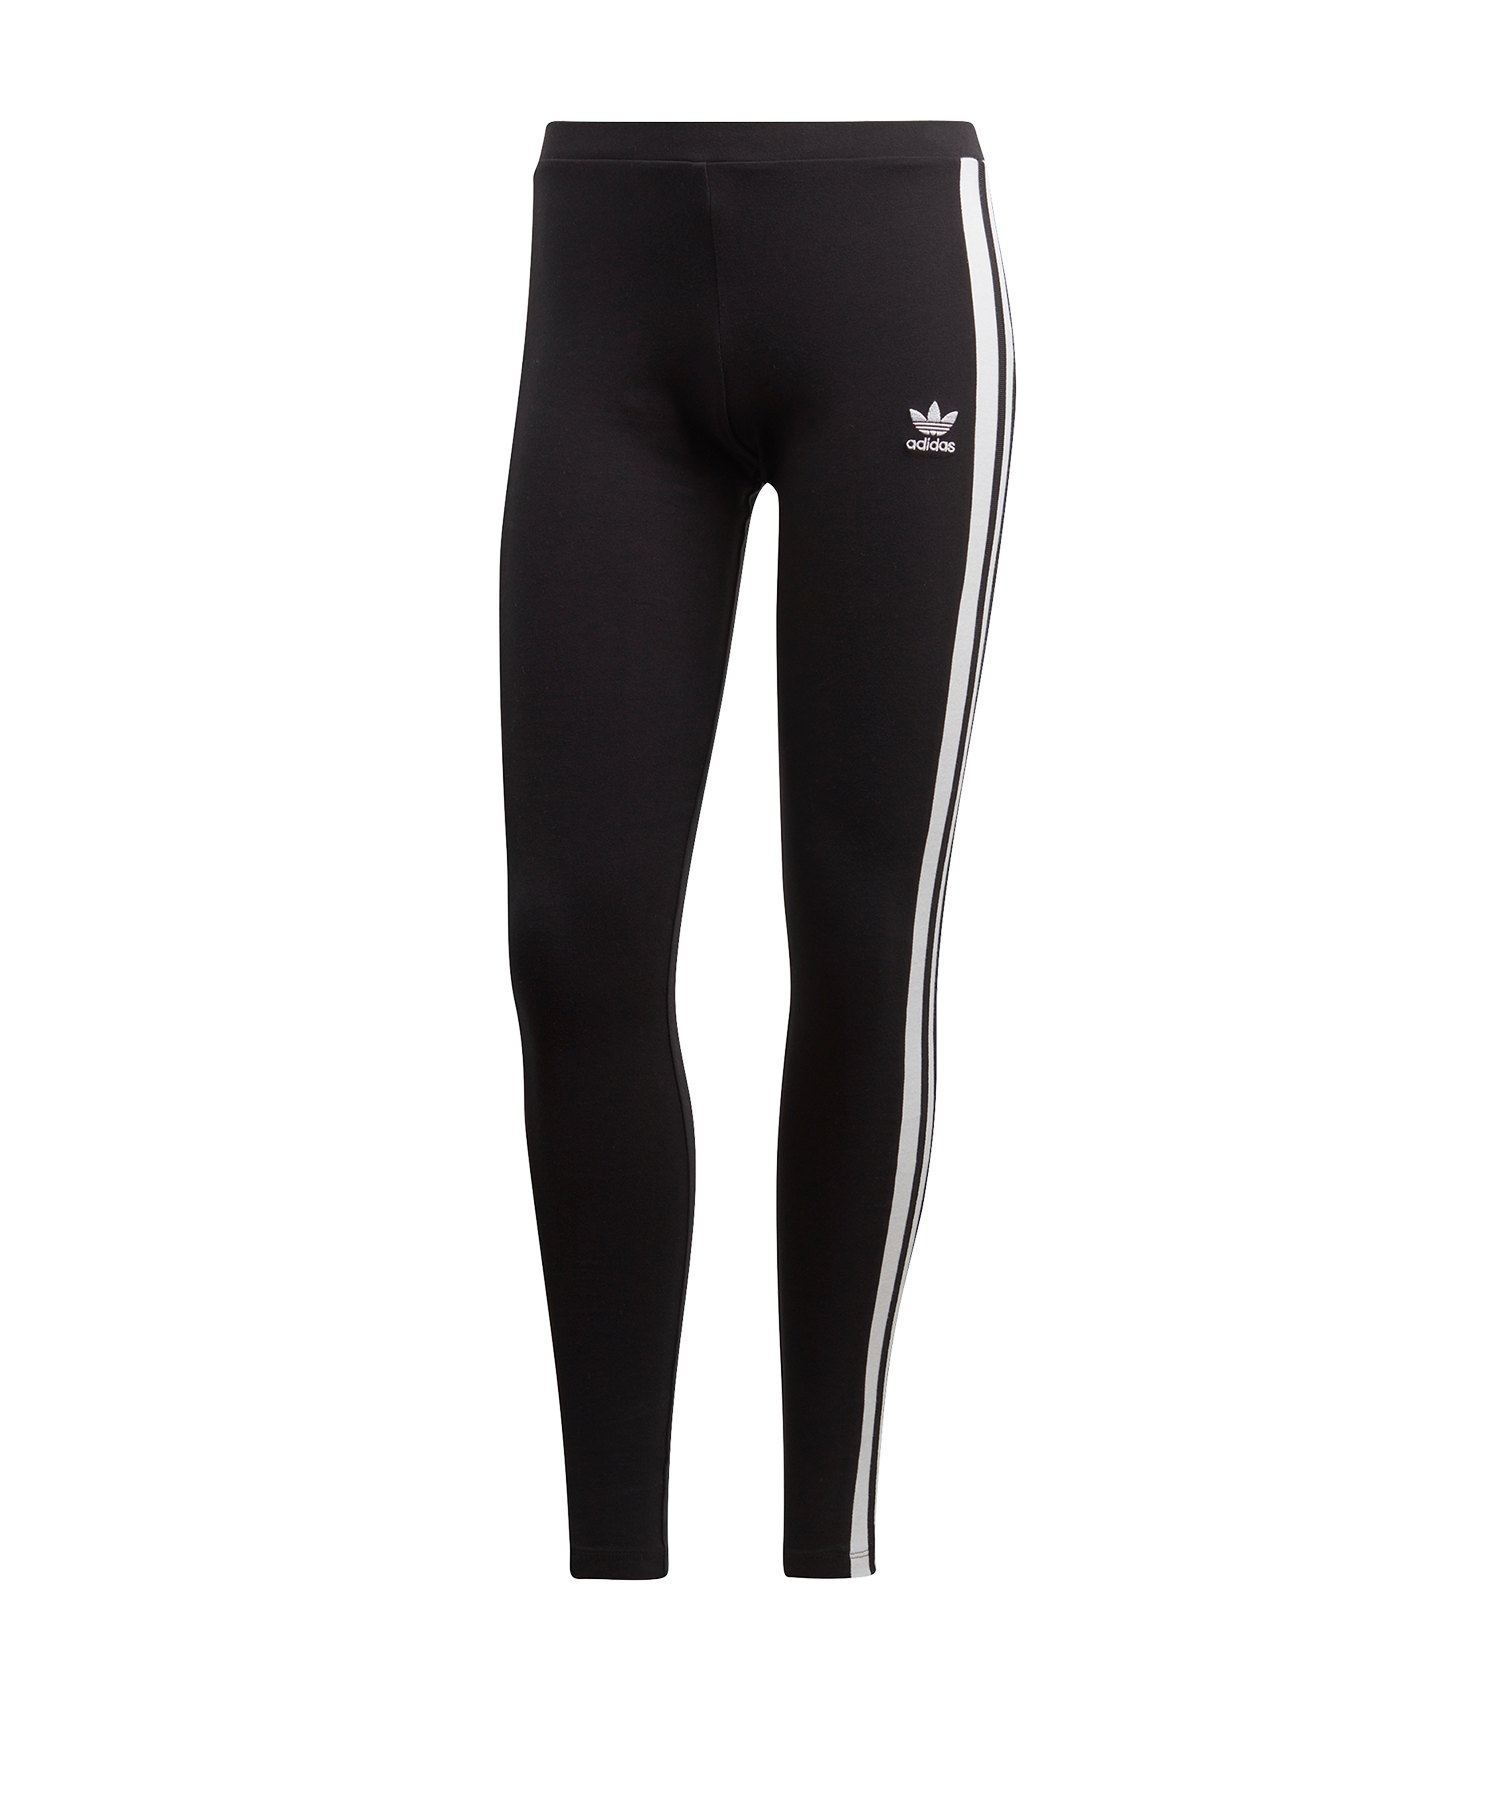 adidas Originals Tight Leggings Damen Schwarz